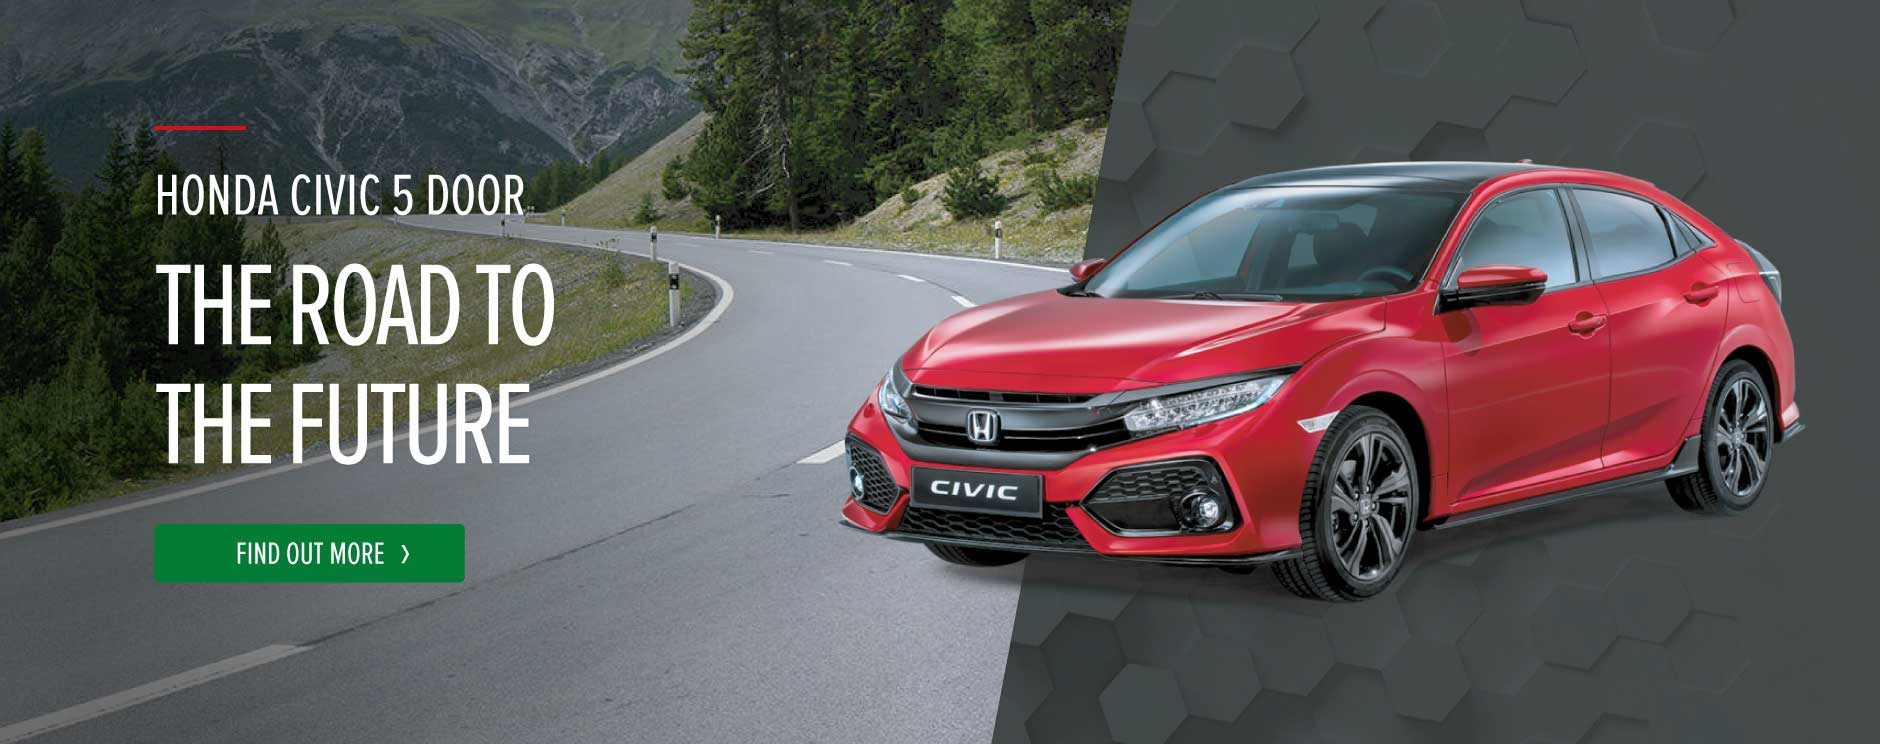 Honda Civic - Tenth Generation Page